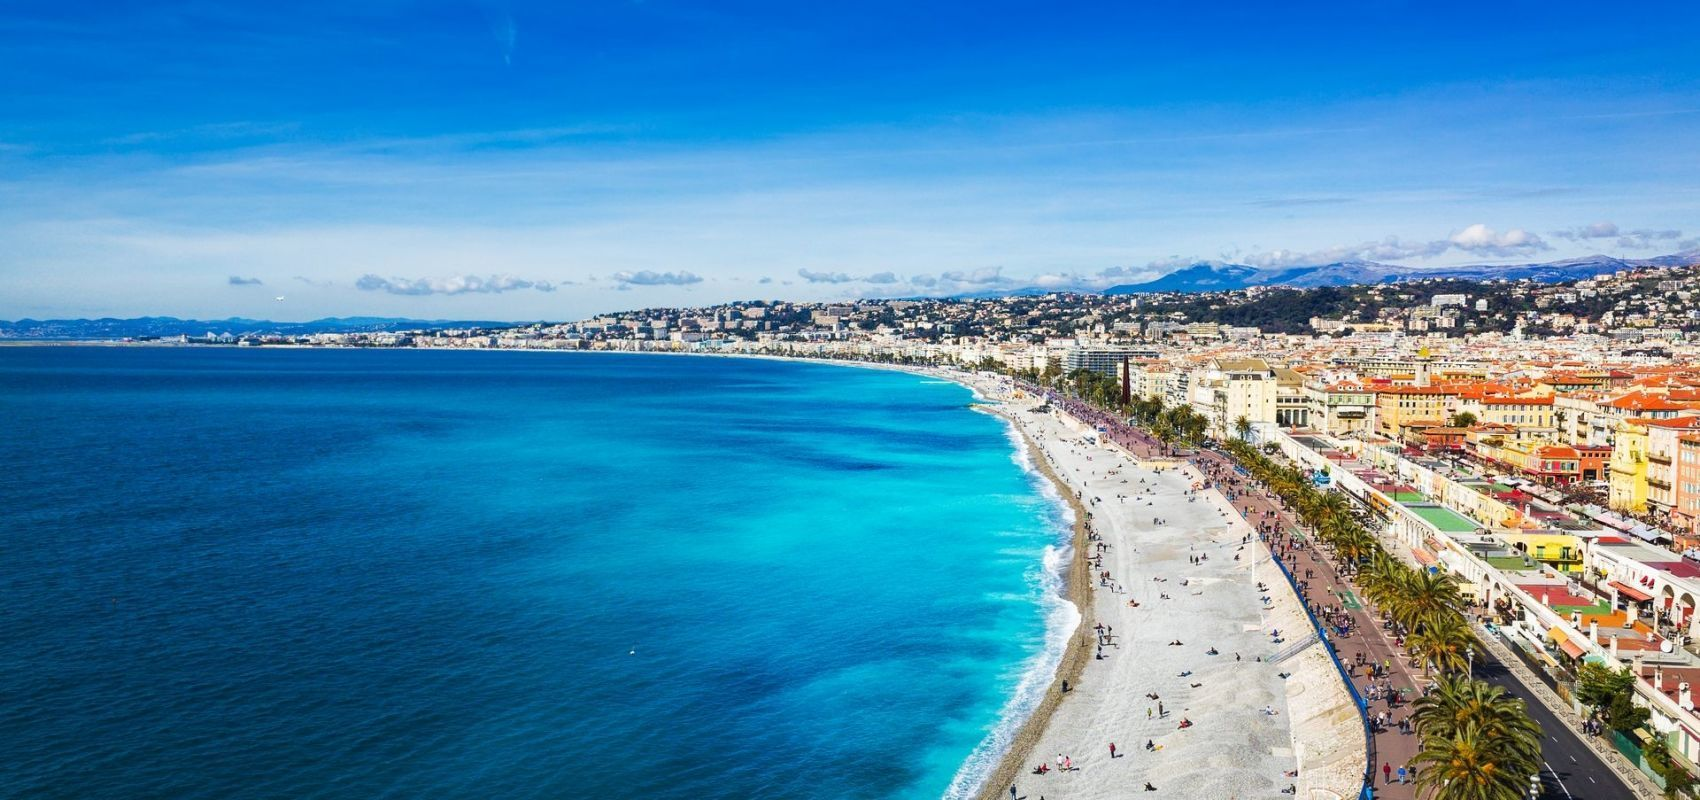 The Deck Hotel par HappyCulture - Plage